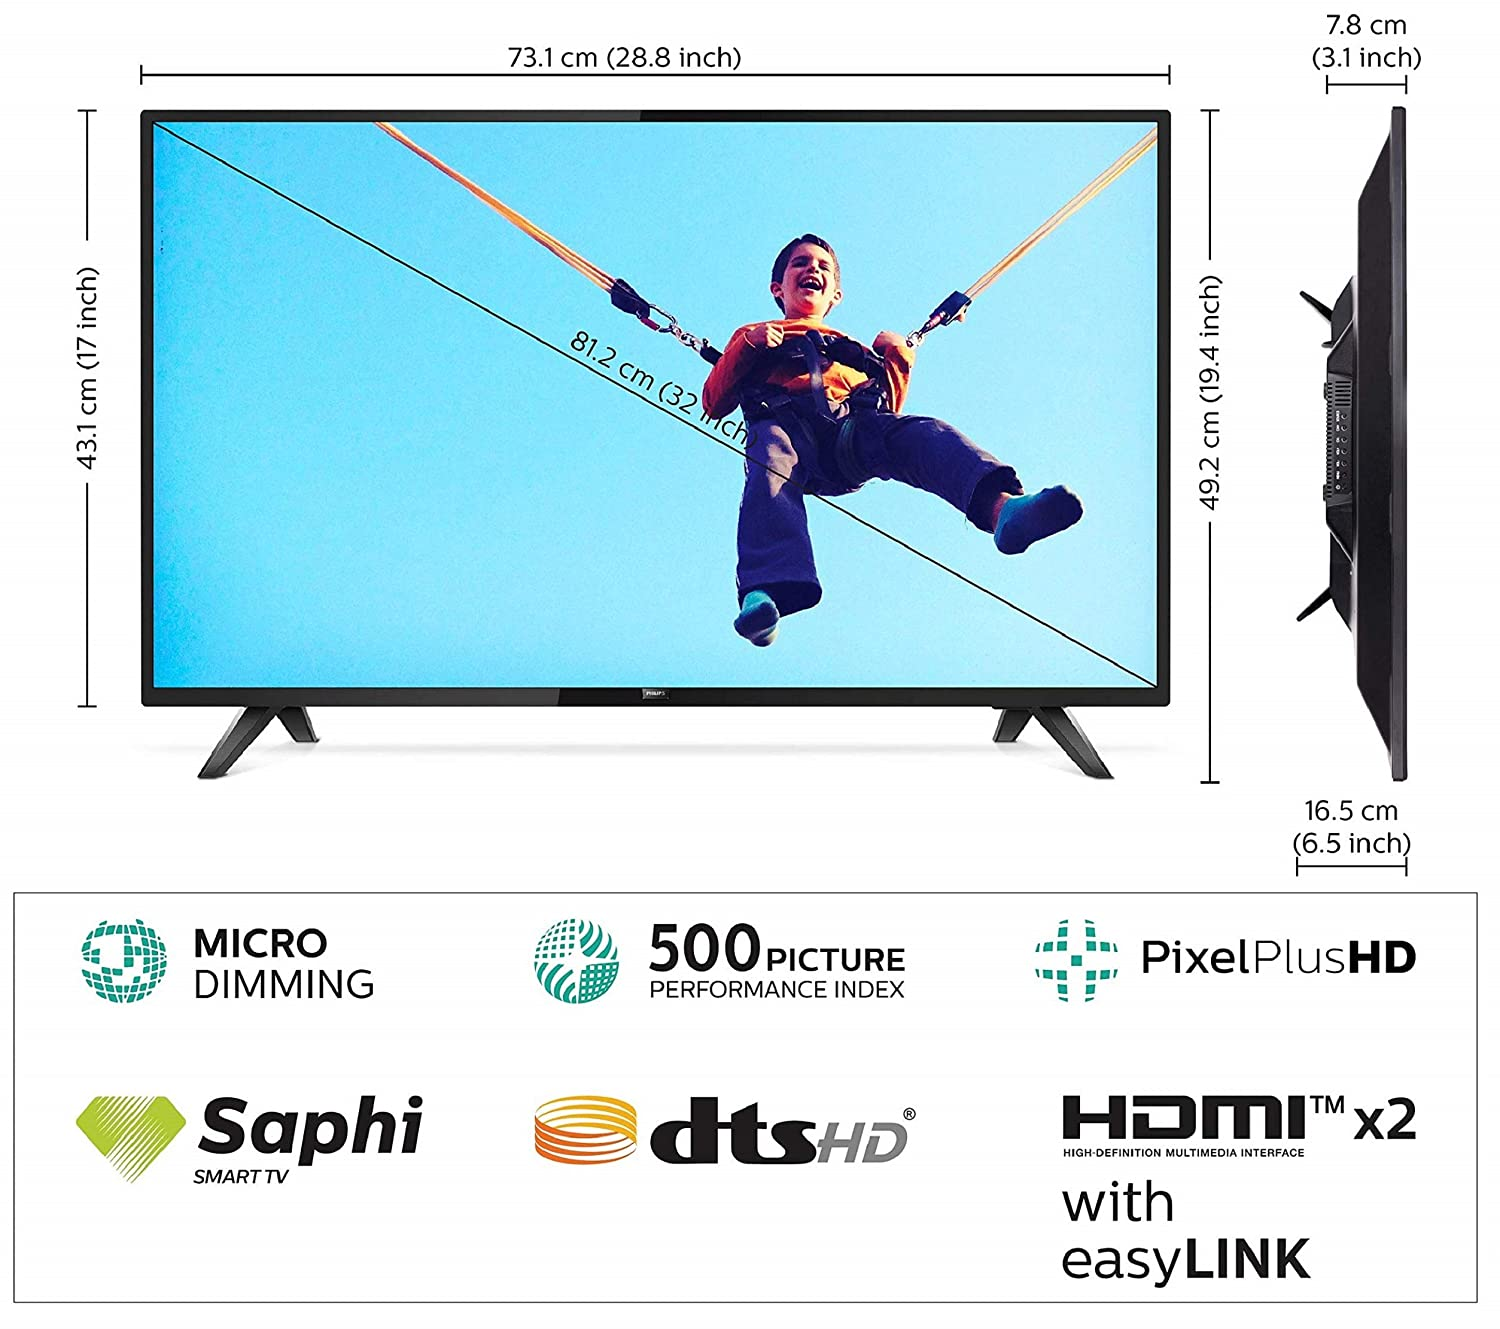 Philips 80 cm (32 inches) 5800 Series HD Ready LED Smart TV